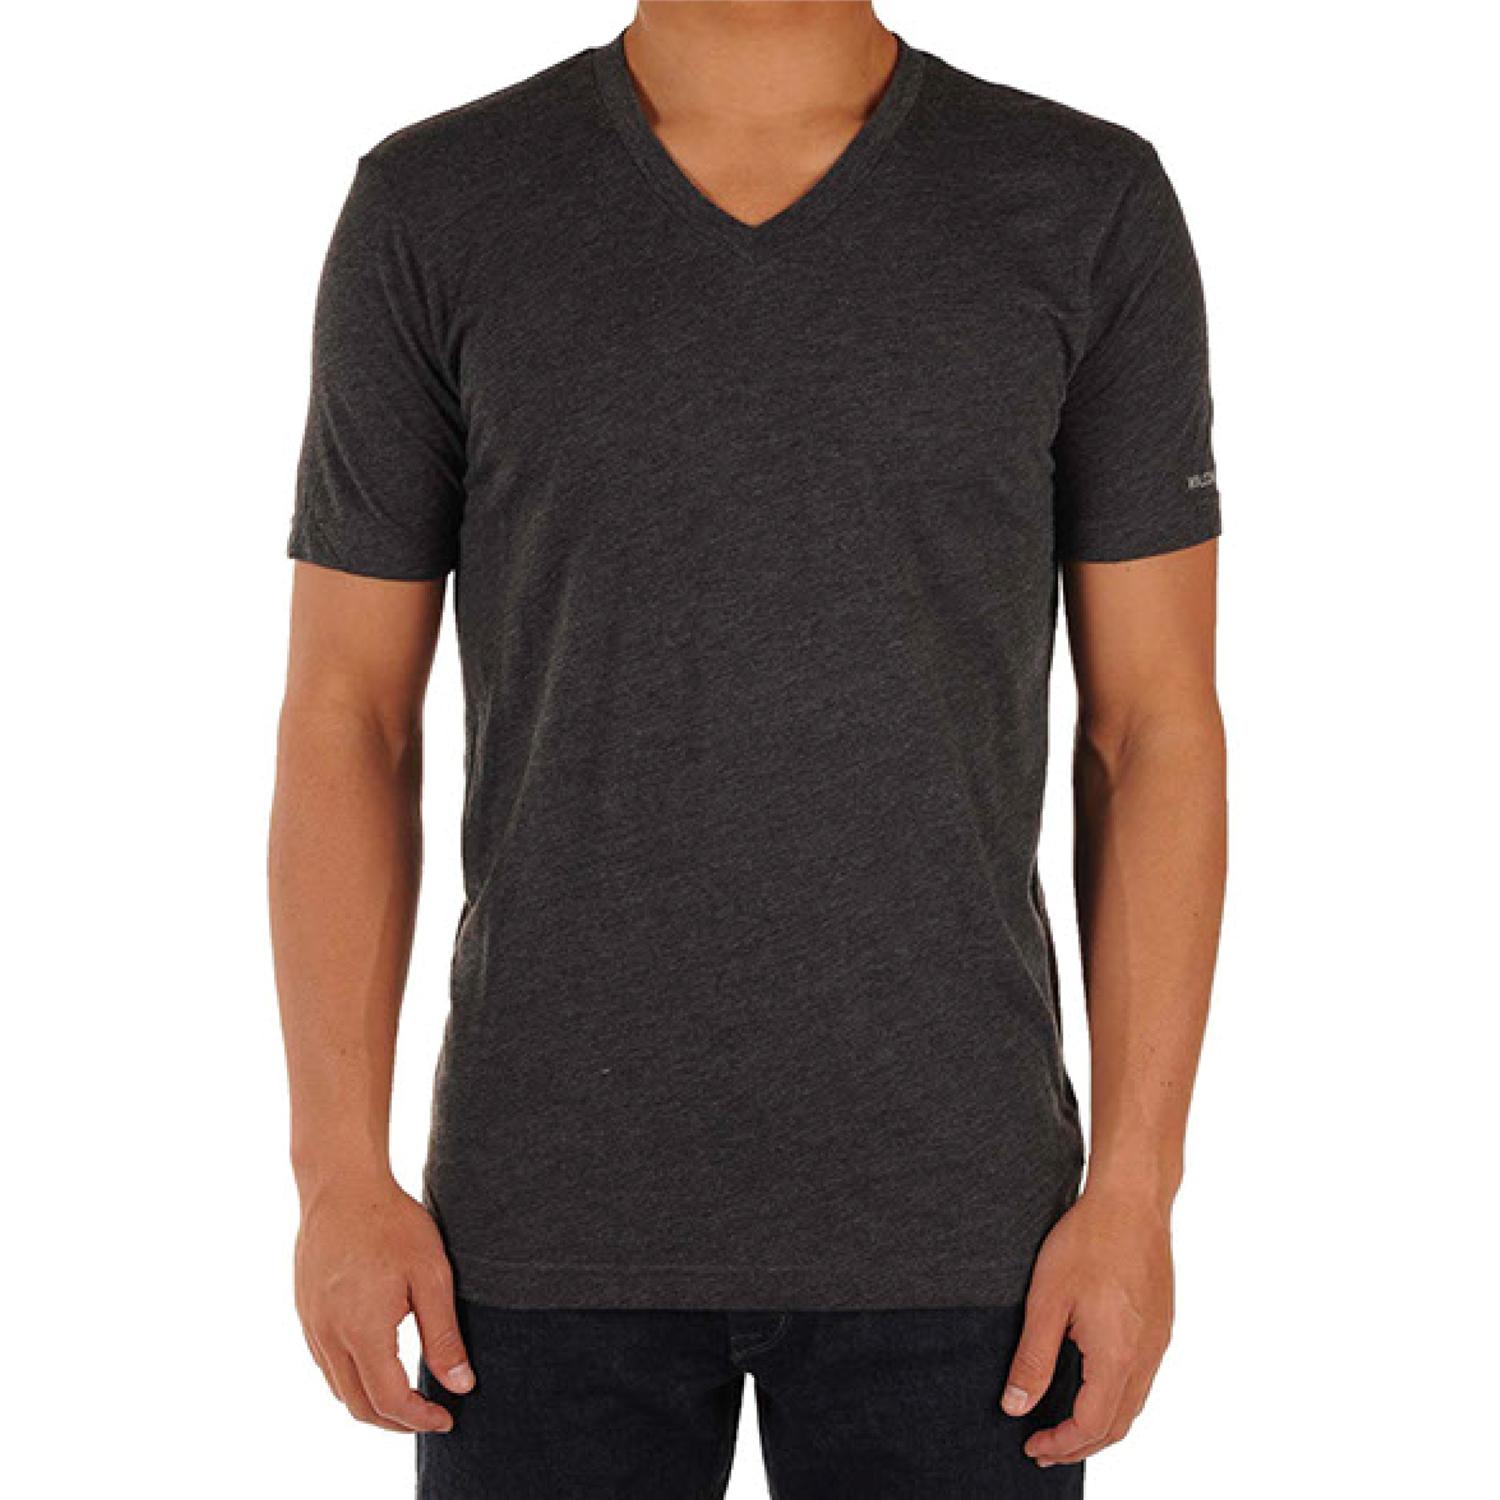 Volcom Solid Heather Too V Neck T Shirt Evo Outlet